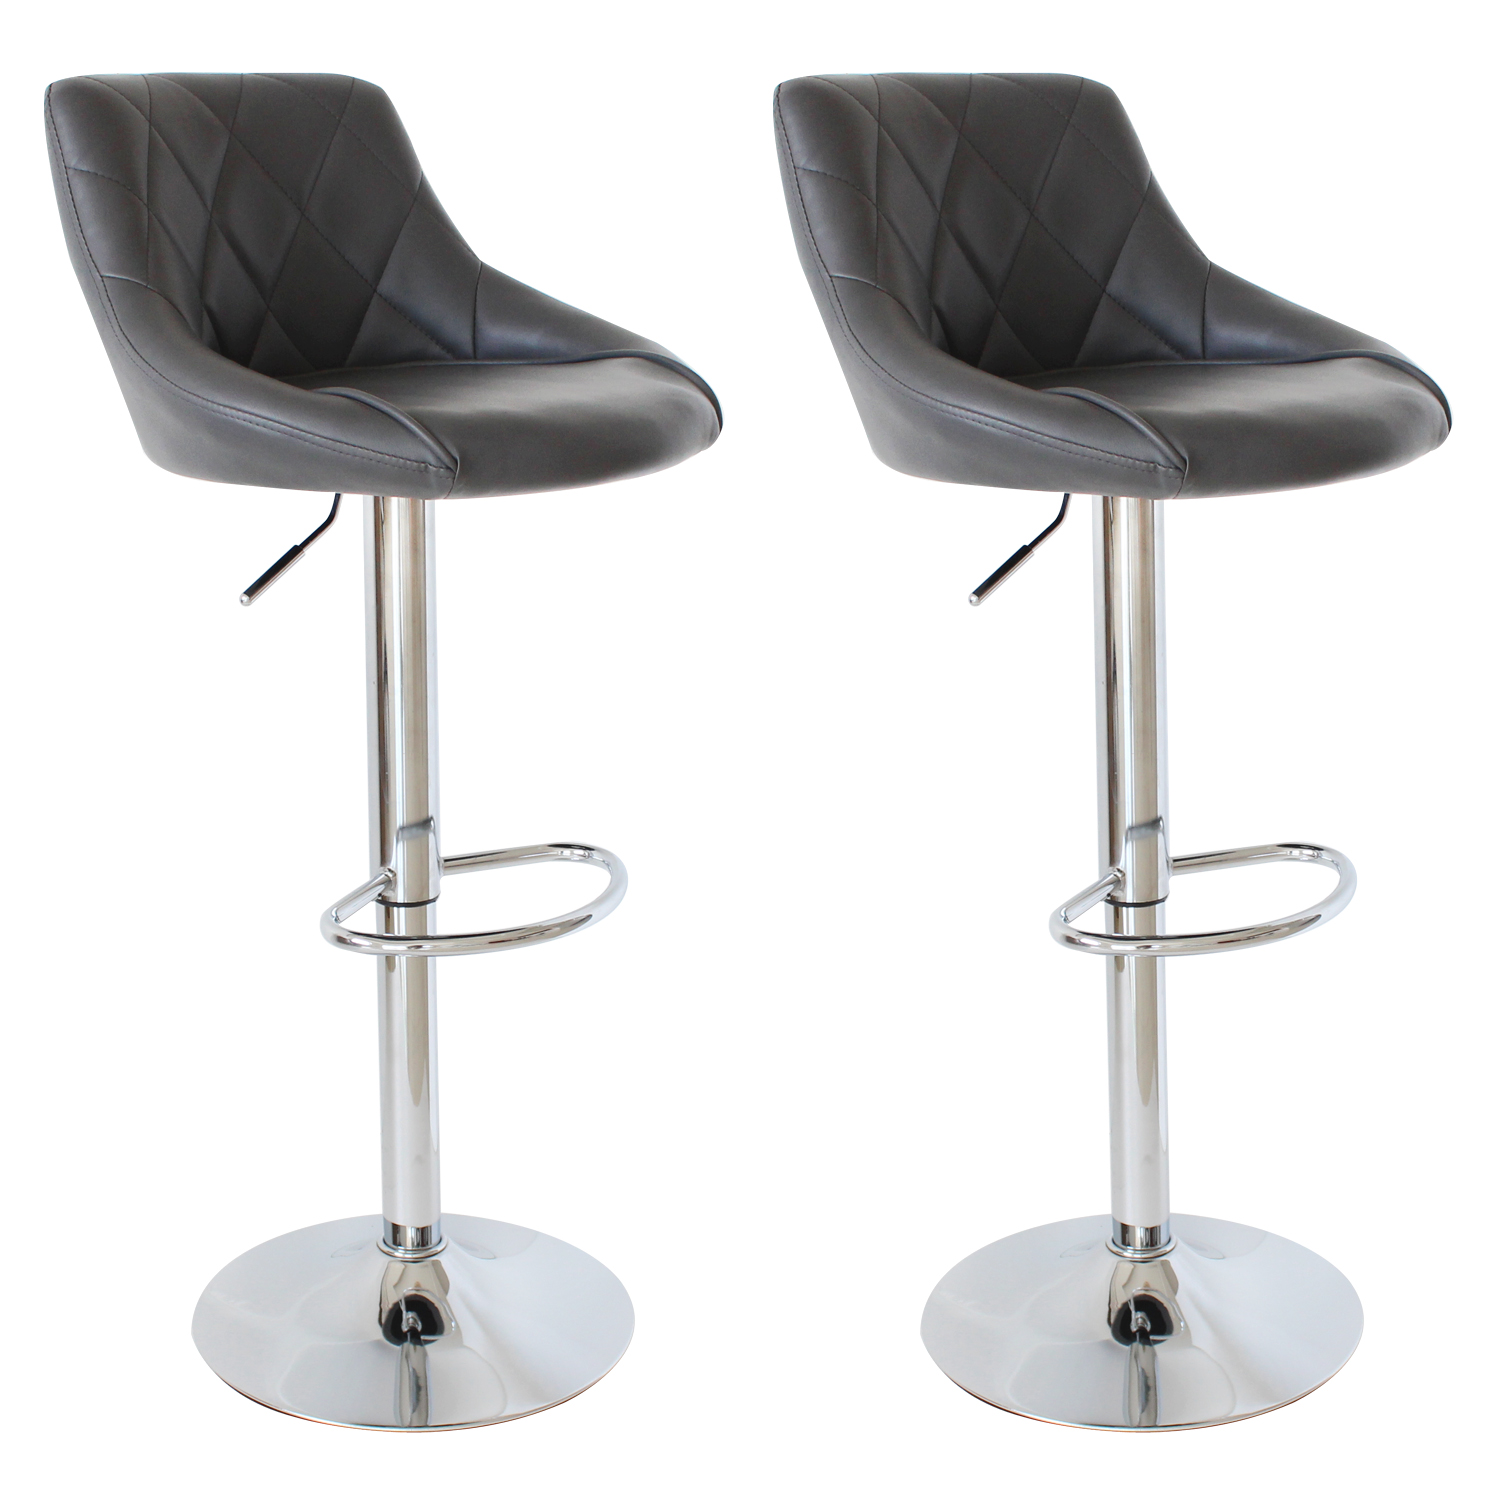 lot de 2 tabourets de bar avec dossier en pu chaise. Black Bedroom Furniture Sets. Home Design Ideas